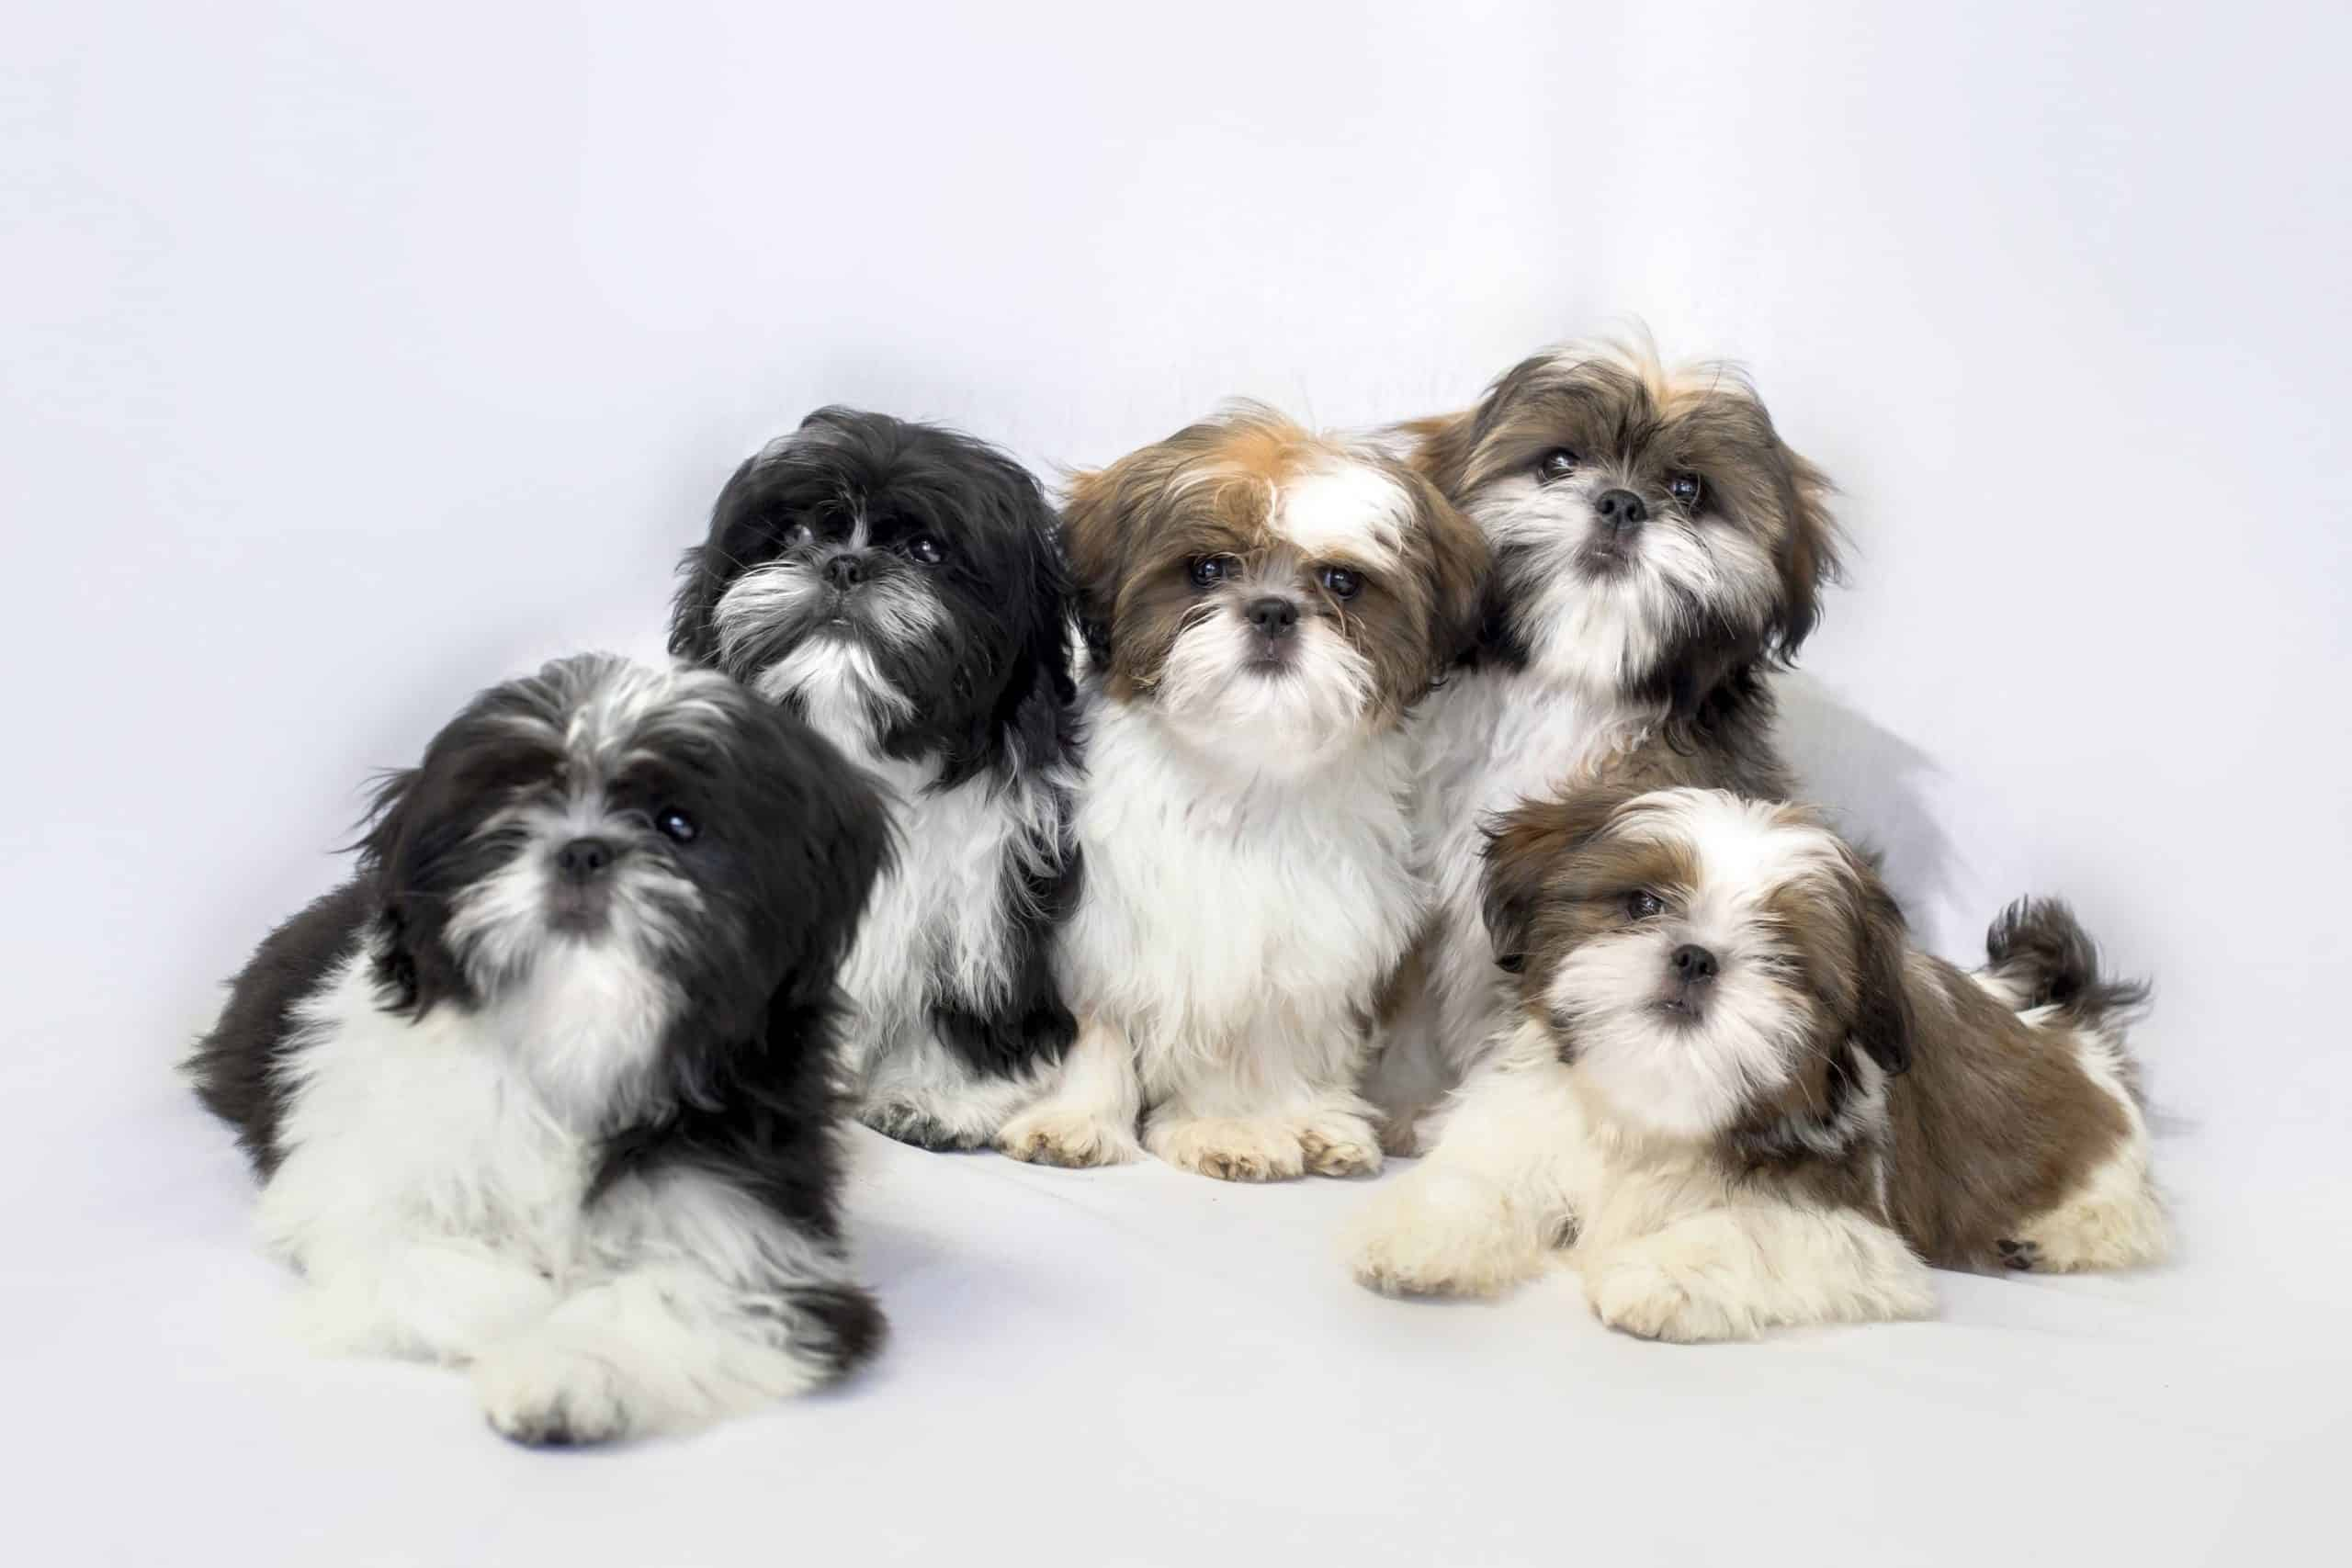 Group of five shih tzu puppies. Shih tzus are considered hypoallergenic.